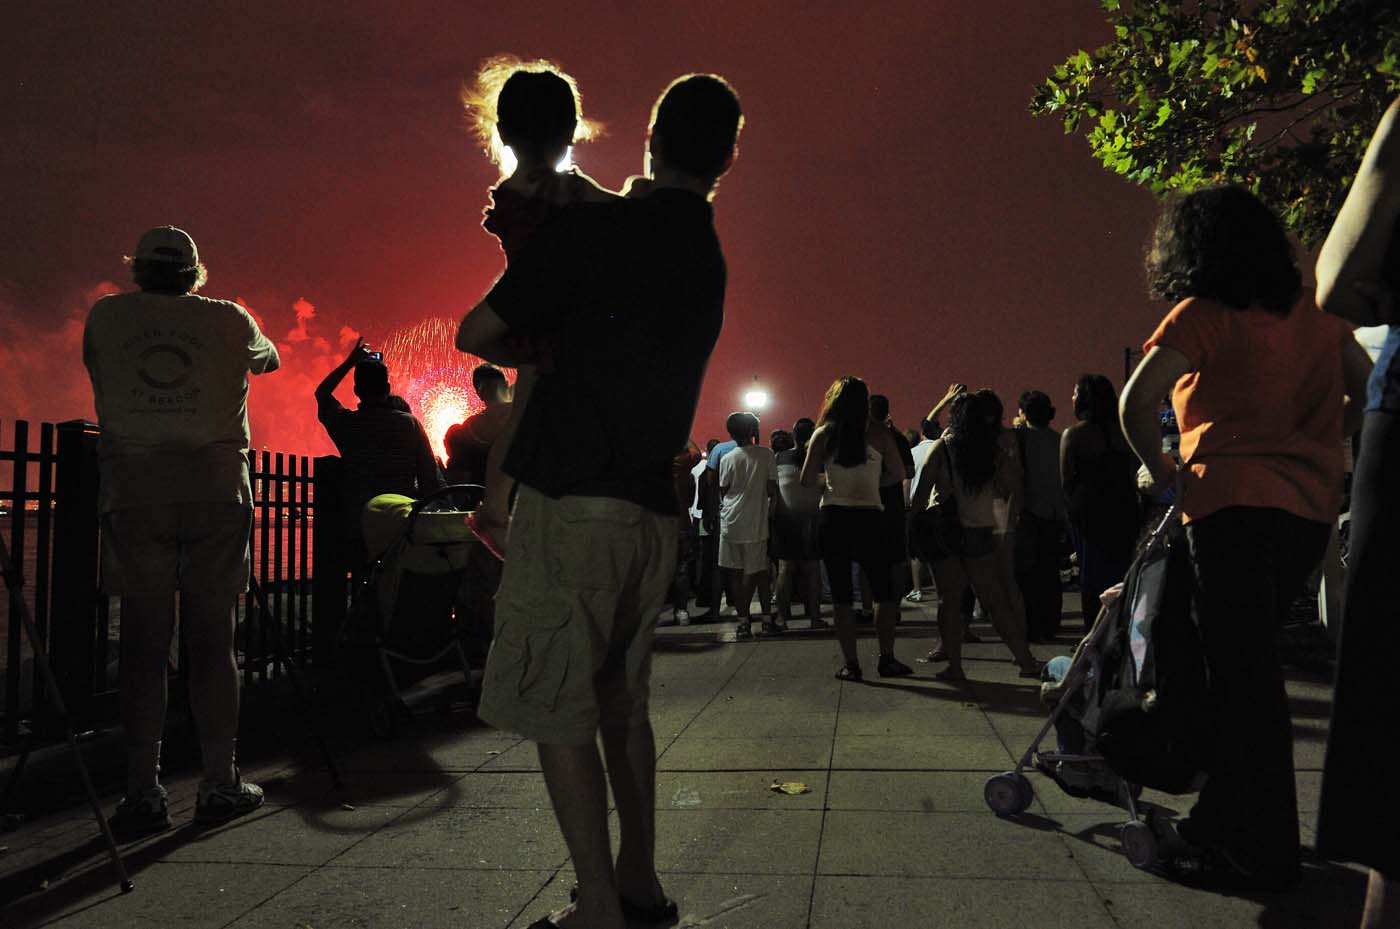 WEST NEW YORK, NJ - JULY 04: Spectators watch the 2012 Macy's Fireworks Spectacular over the Hudson River from Port Imperial on July 4, 2012 in West New York, New Jersey. (Michael Loccisano/Getty Images)